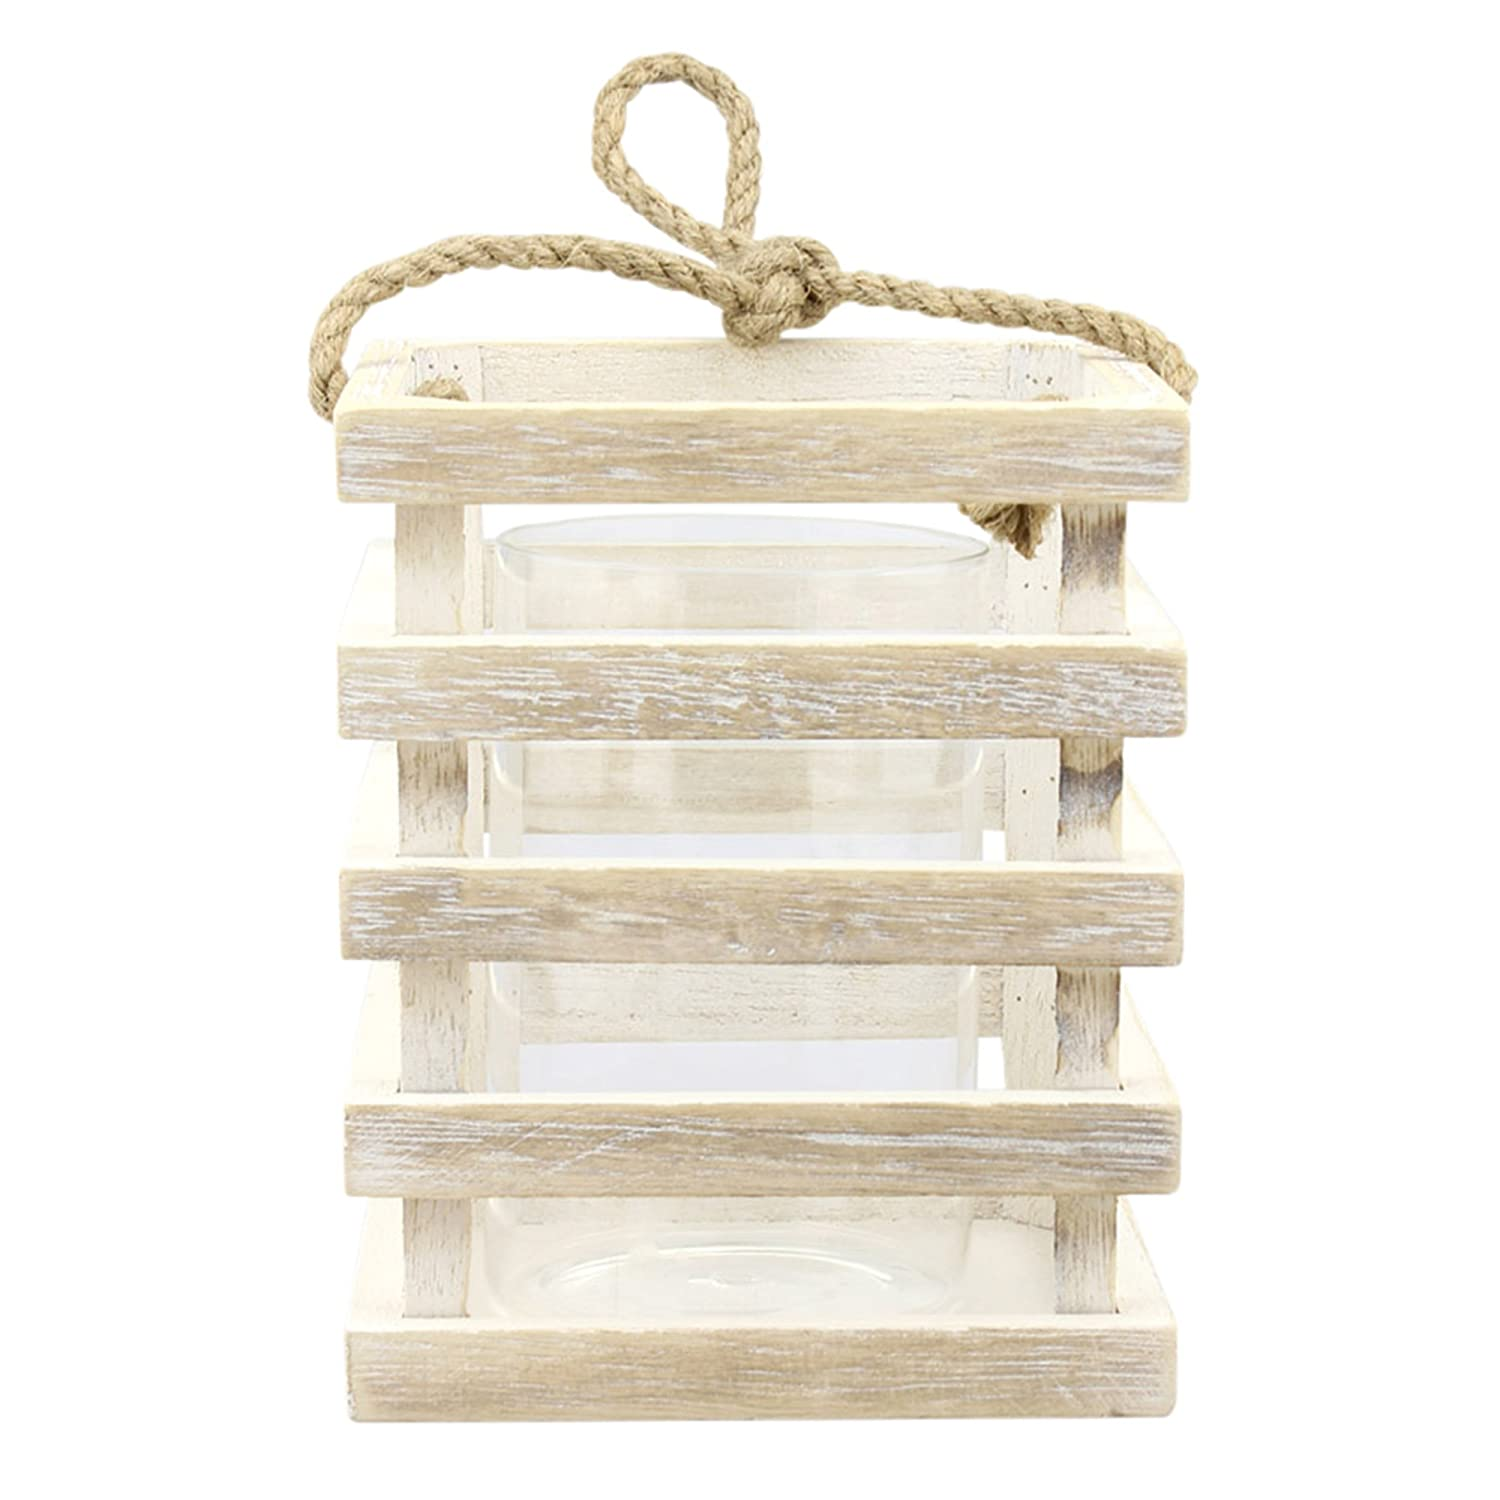 Stonebriar Worn White Wooden Beach House Candle Lantern, Coastal Home Decor, For Table Top or Hanging Display, For Indoor or Outdoor Use, Small